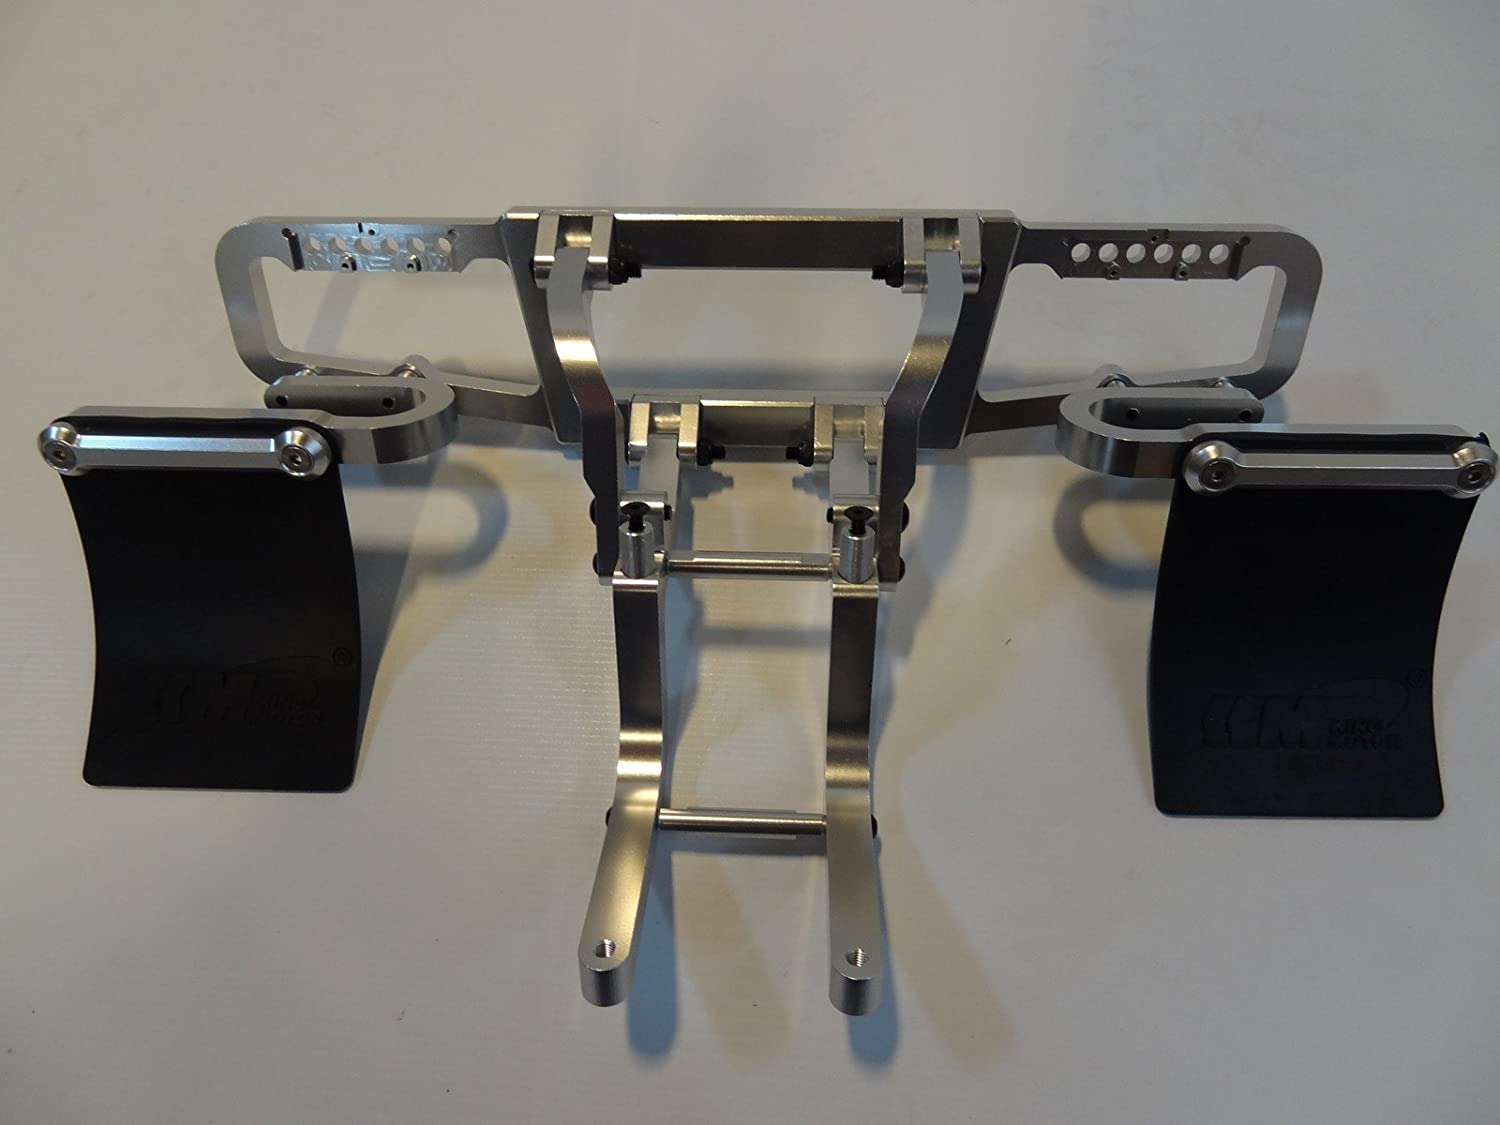 Short Course Truck CNC Aluminium Front AND Rear Bumpers (silver) for HPI Baja 5T 5SC